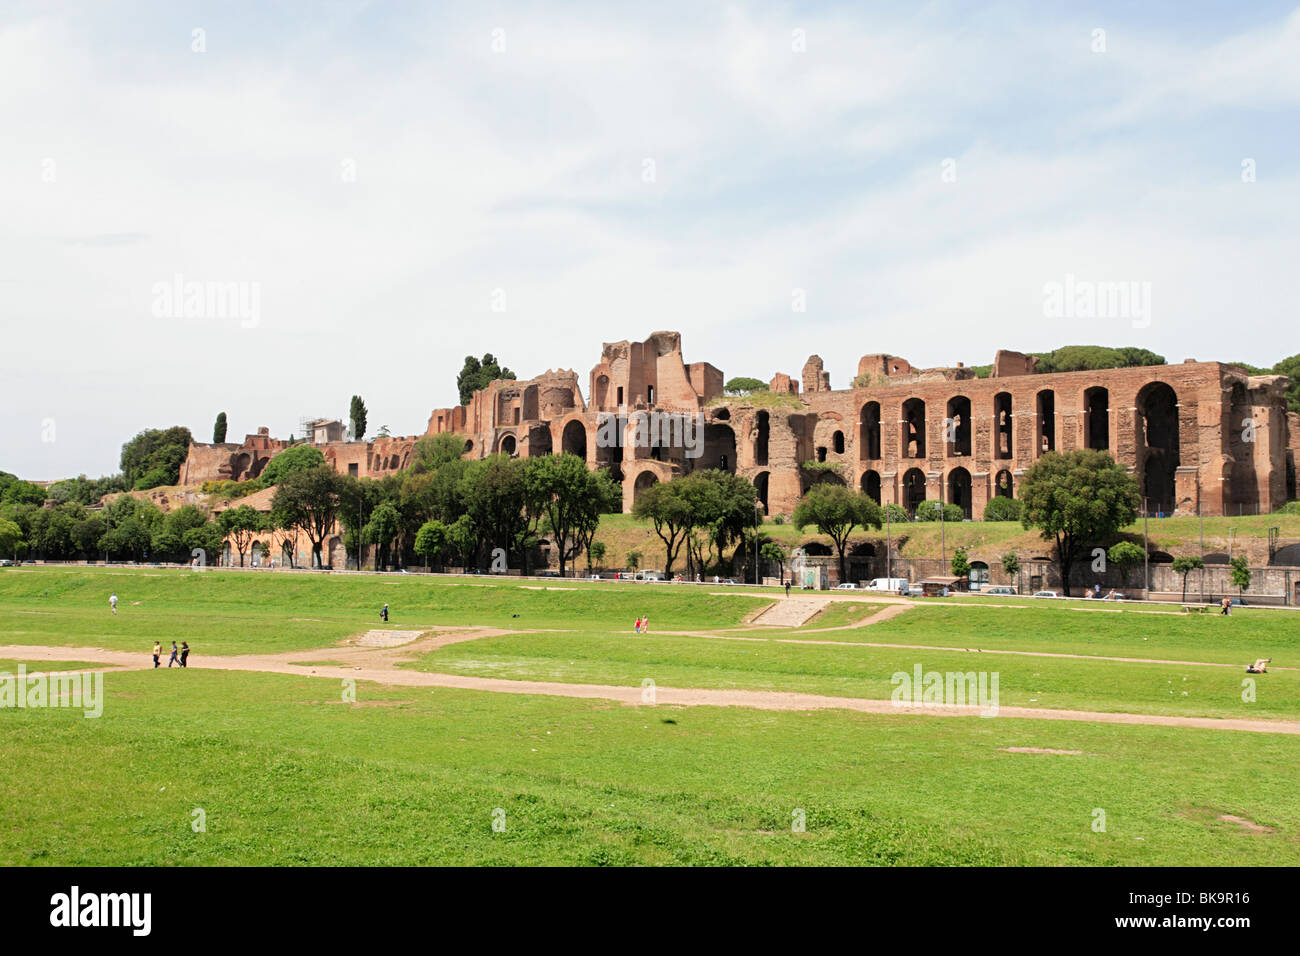 Ruins Of The Circus Maximus Imperial Palace On The